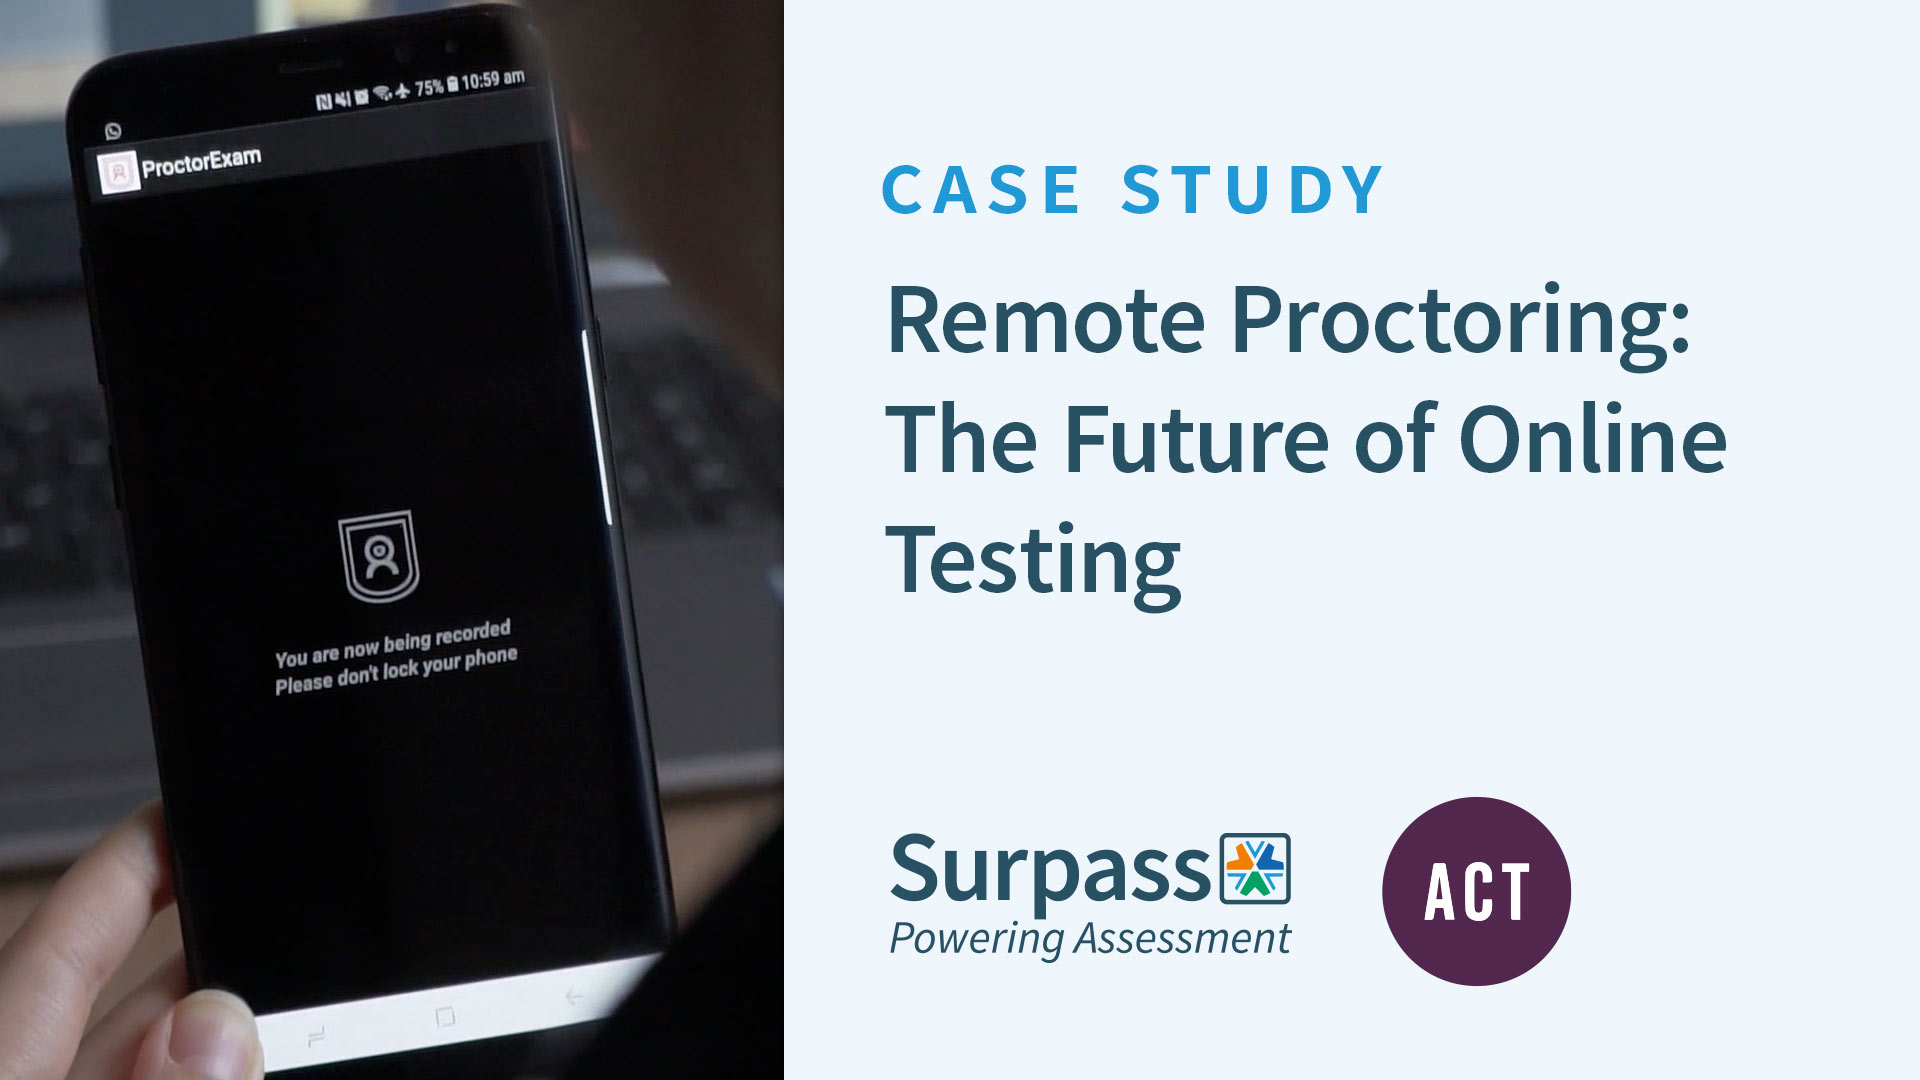 Case Study - Remote Proctoring: The Future of Online Testing